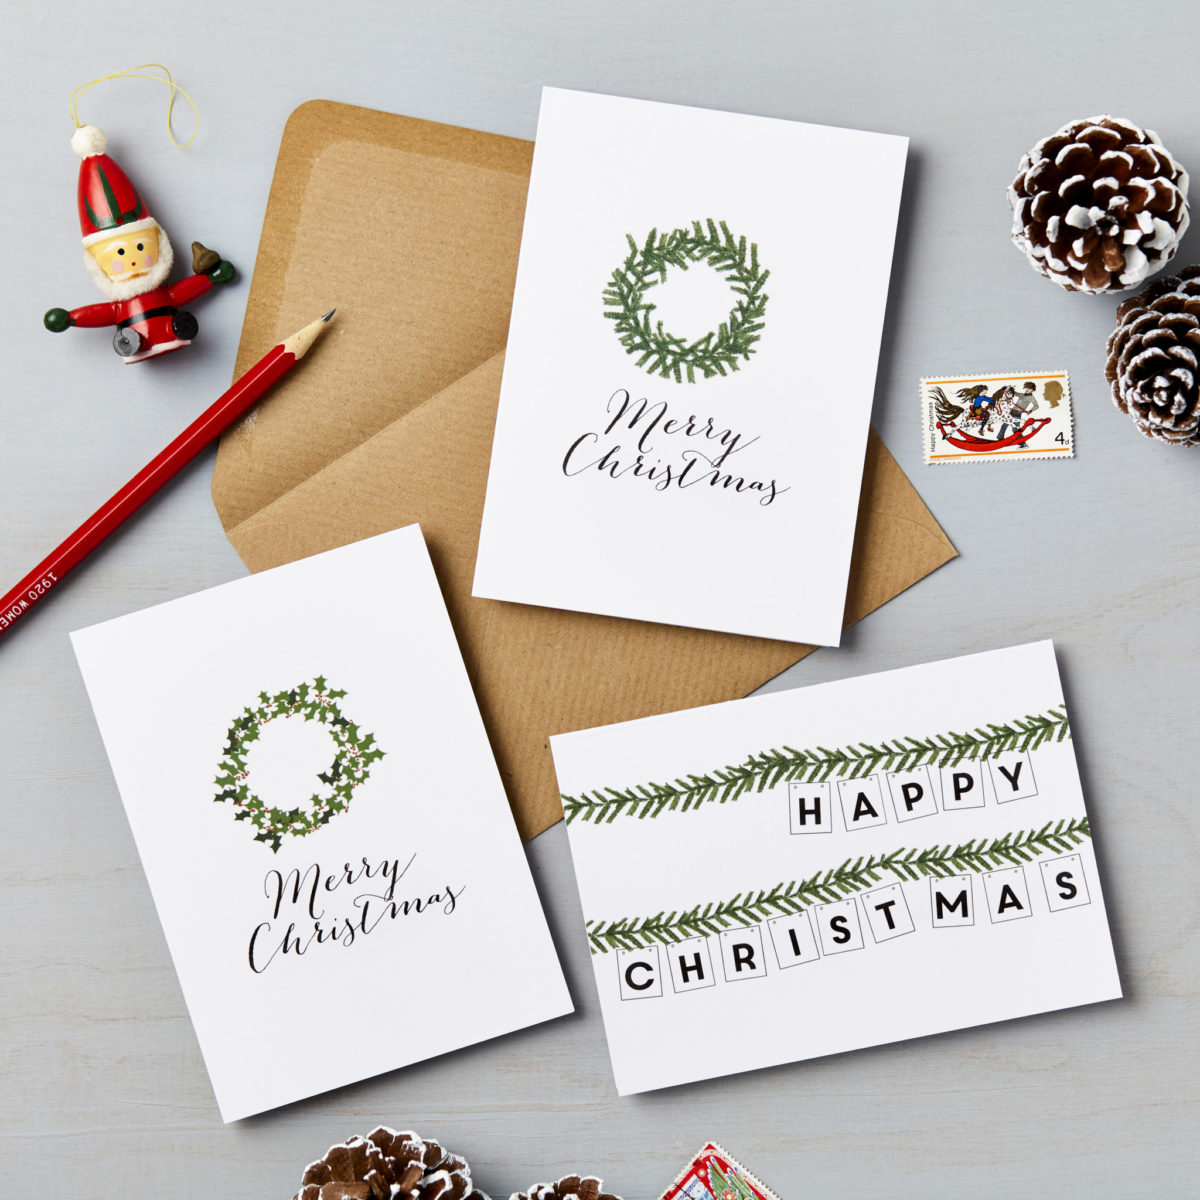 Pack Of 6 Illustrated Wreath Charity Christmas Cards